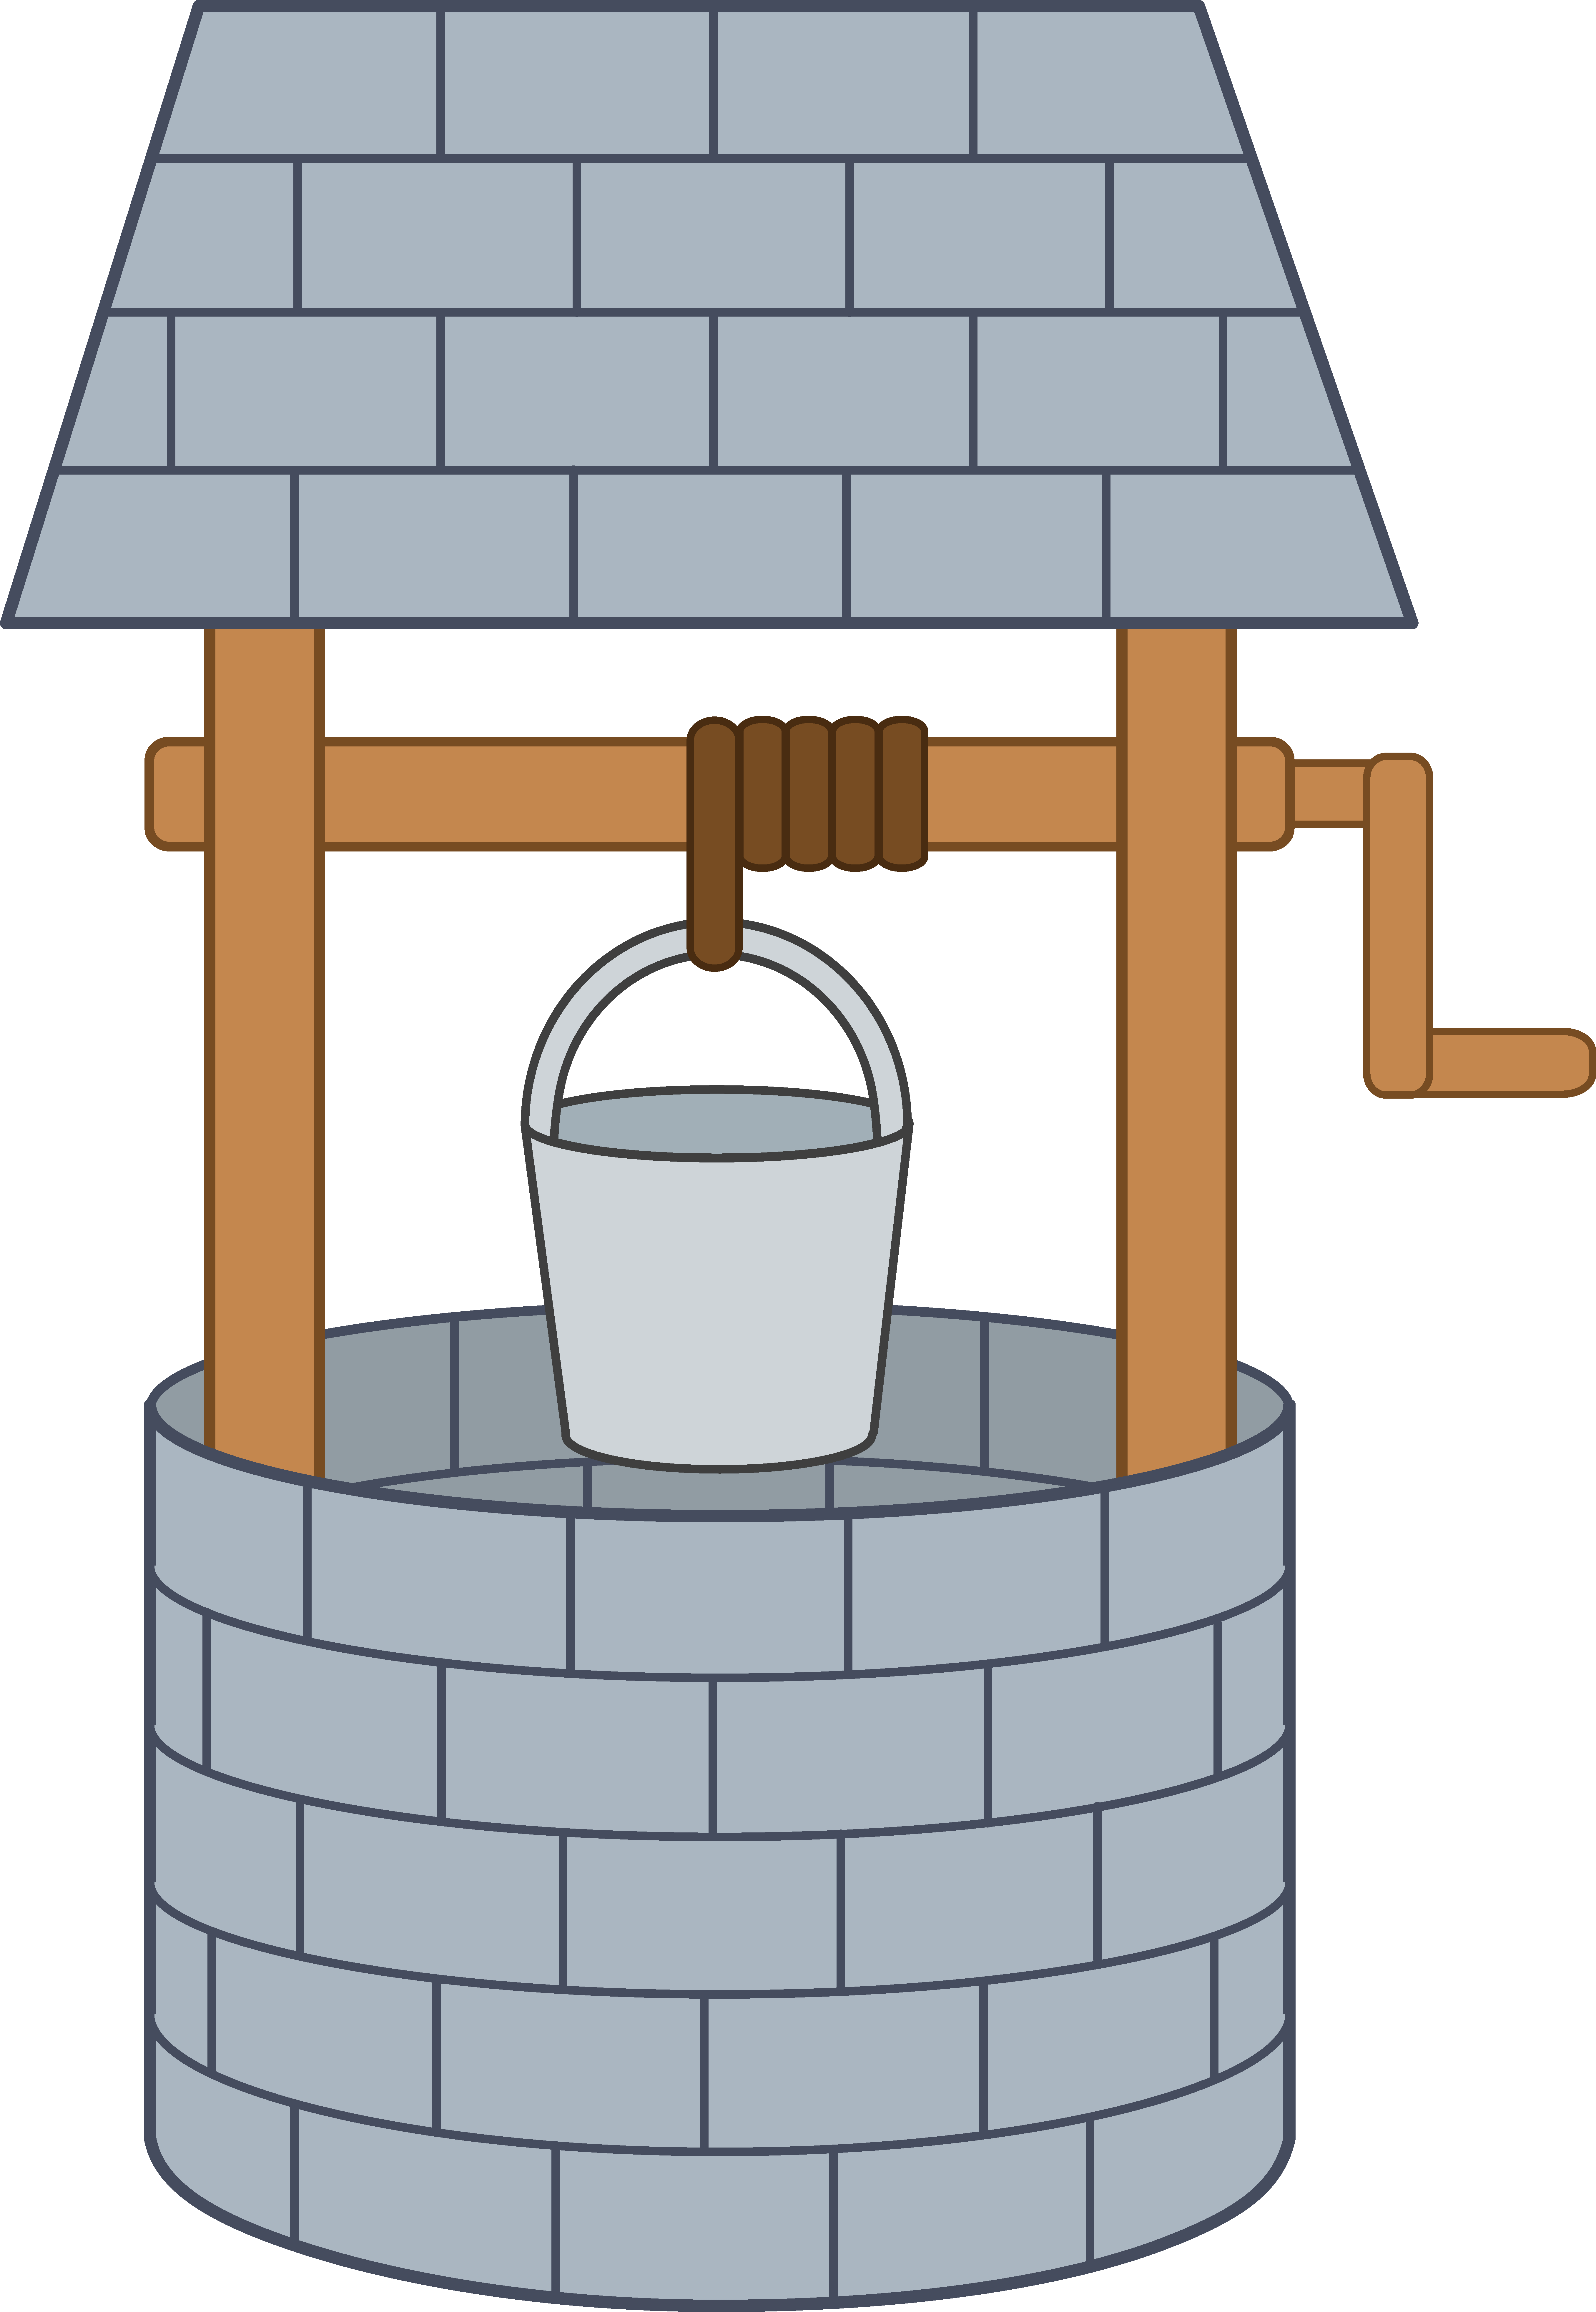 Wishing clipart royalty free download Cute Wishing Well - Free Clip Art royalty free download